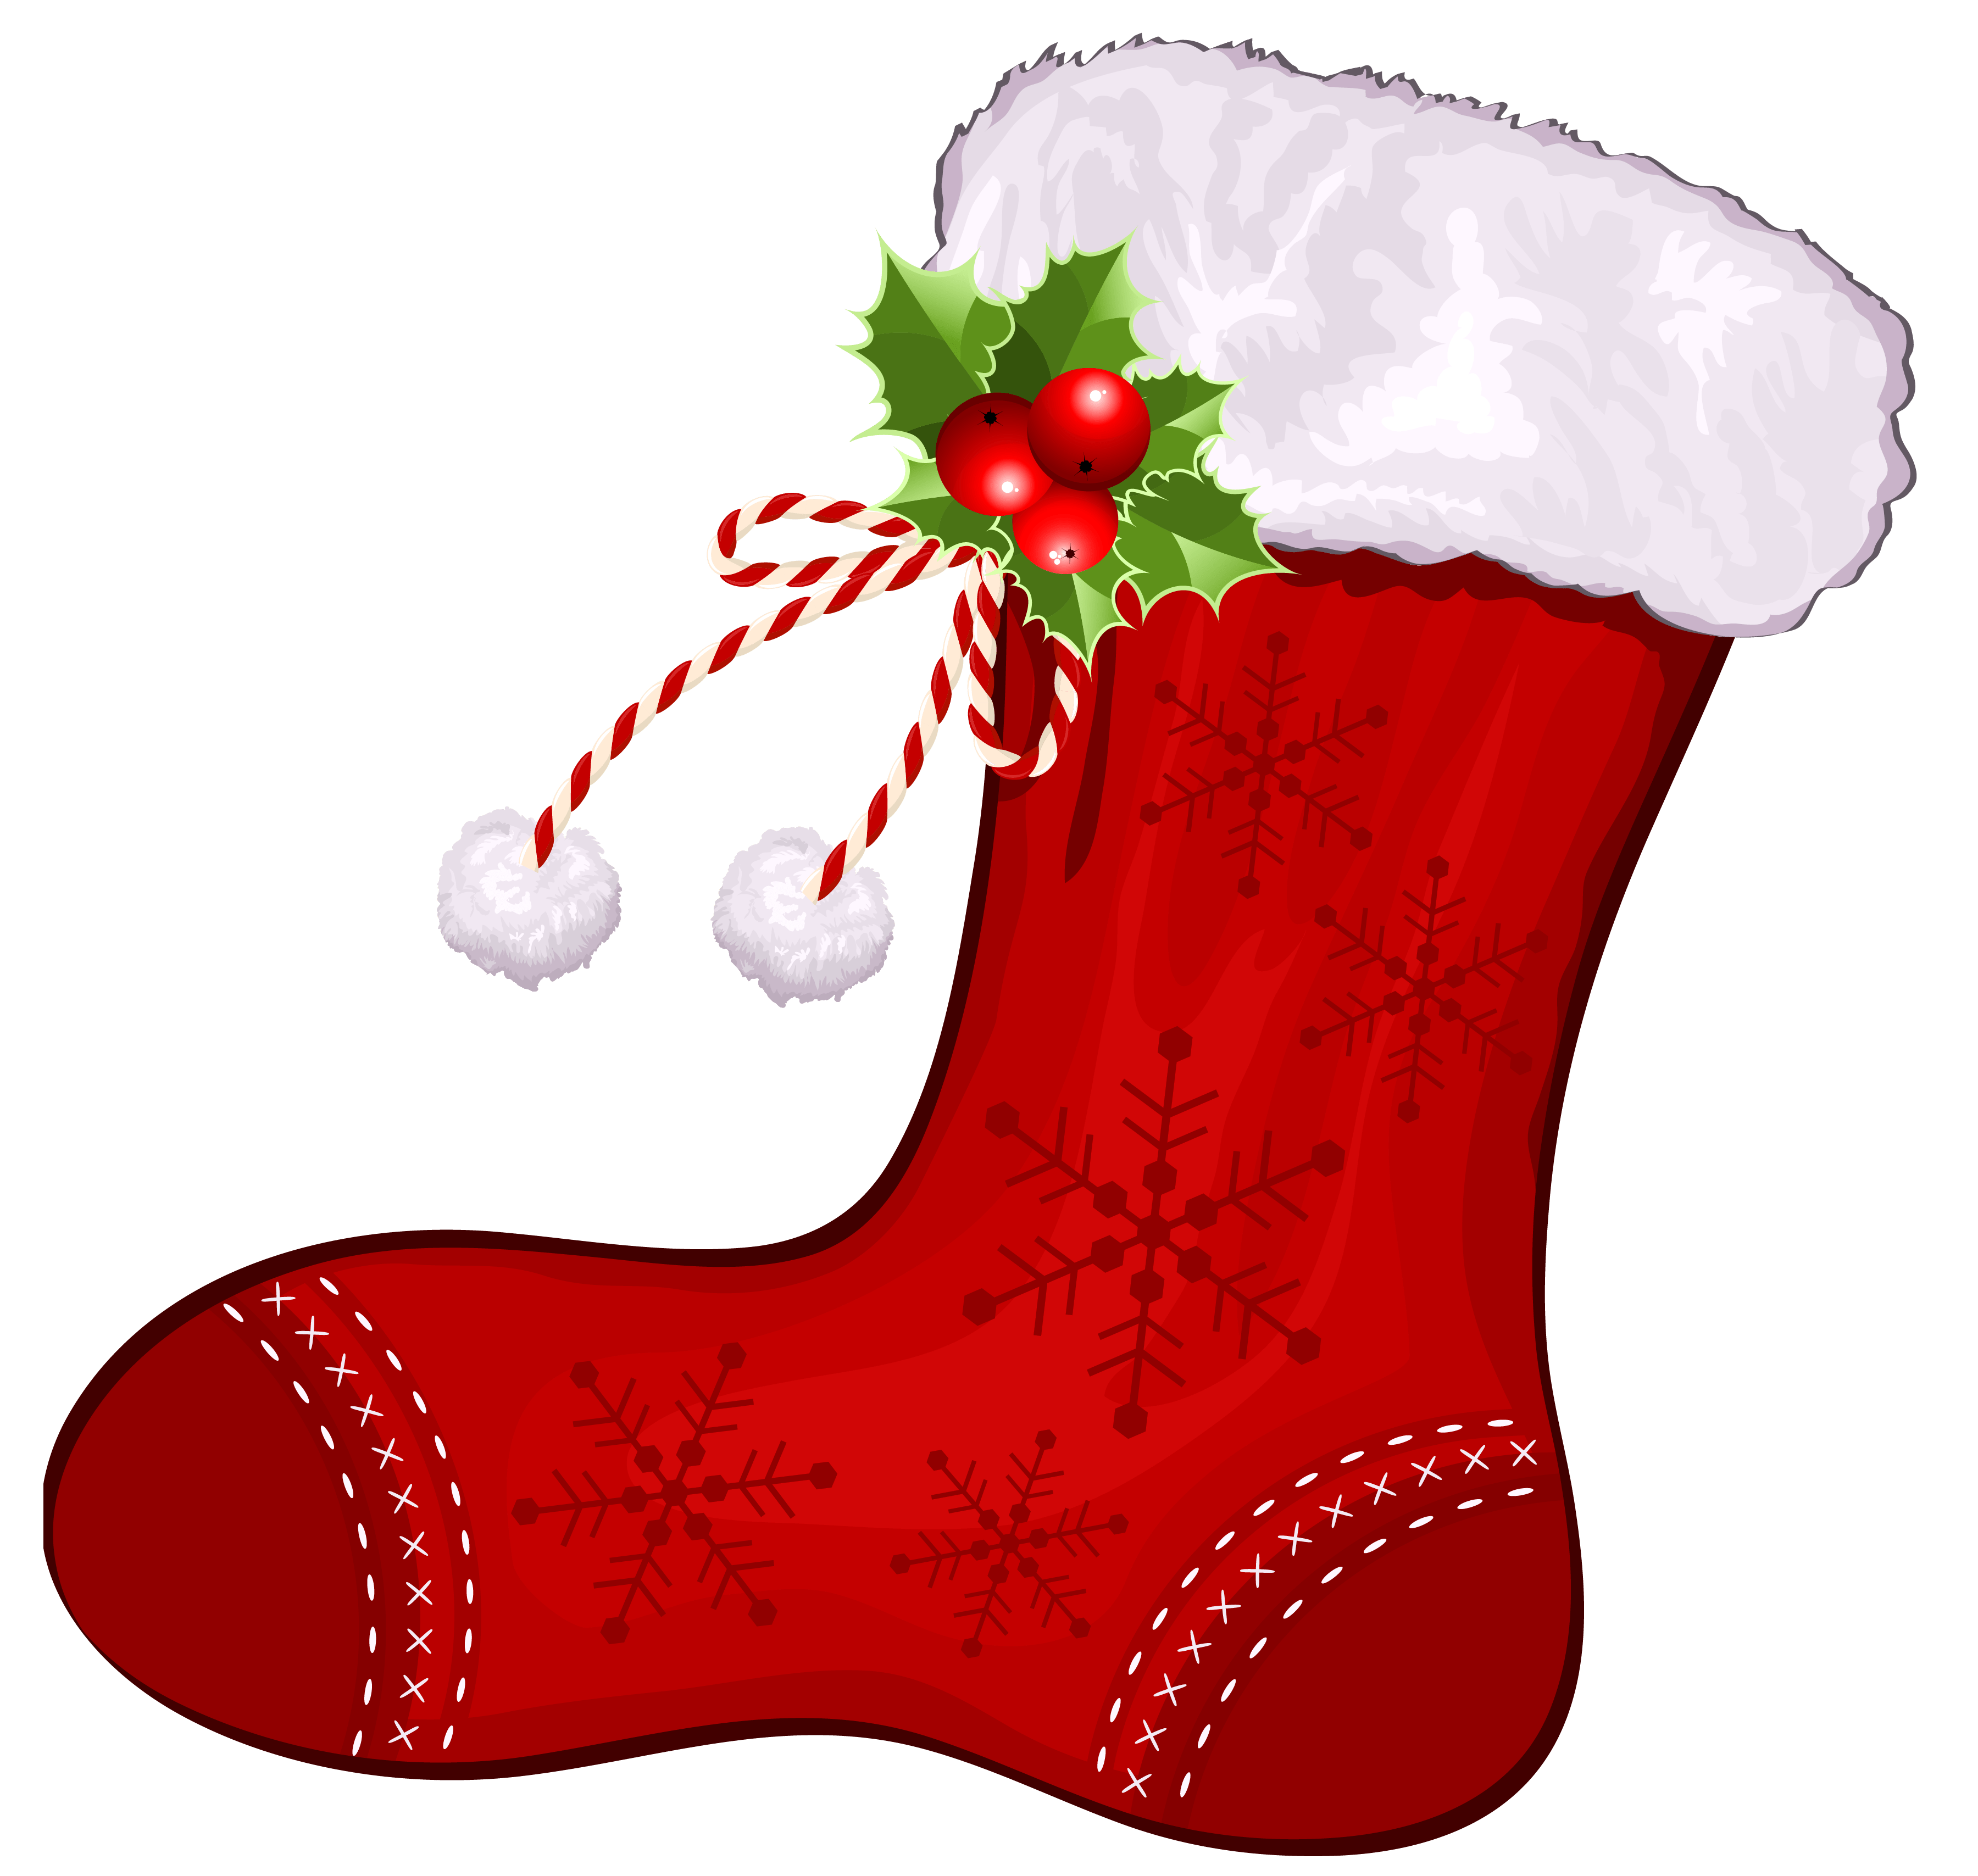 Christmas socks clipart free Christmas Stocking Clipart Images – Merry Christmas And Happy New ... free